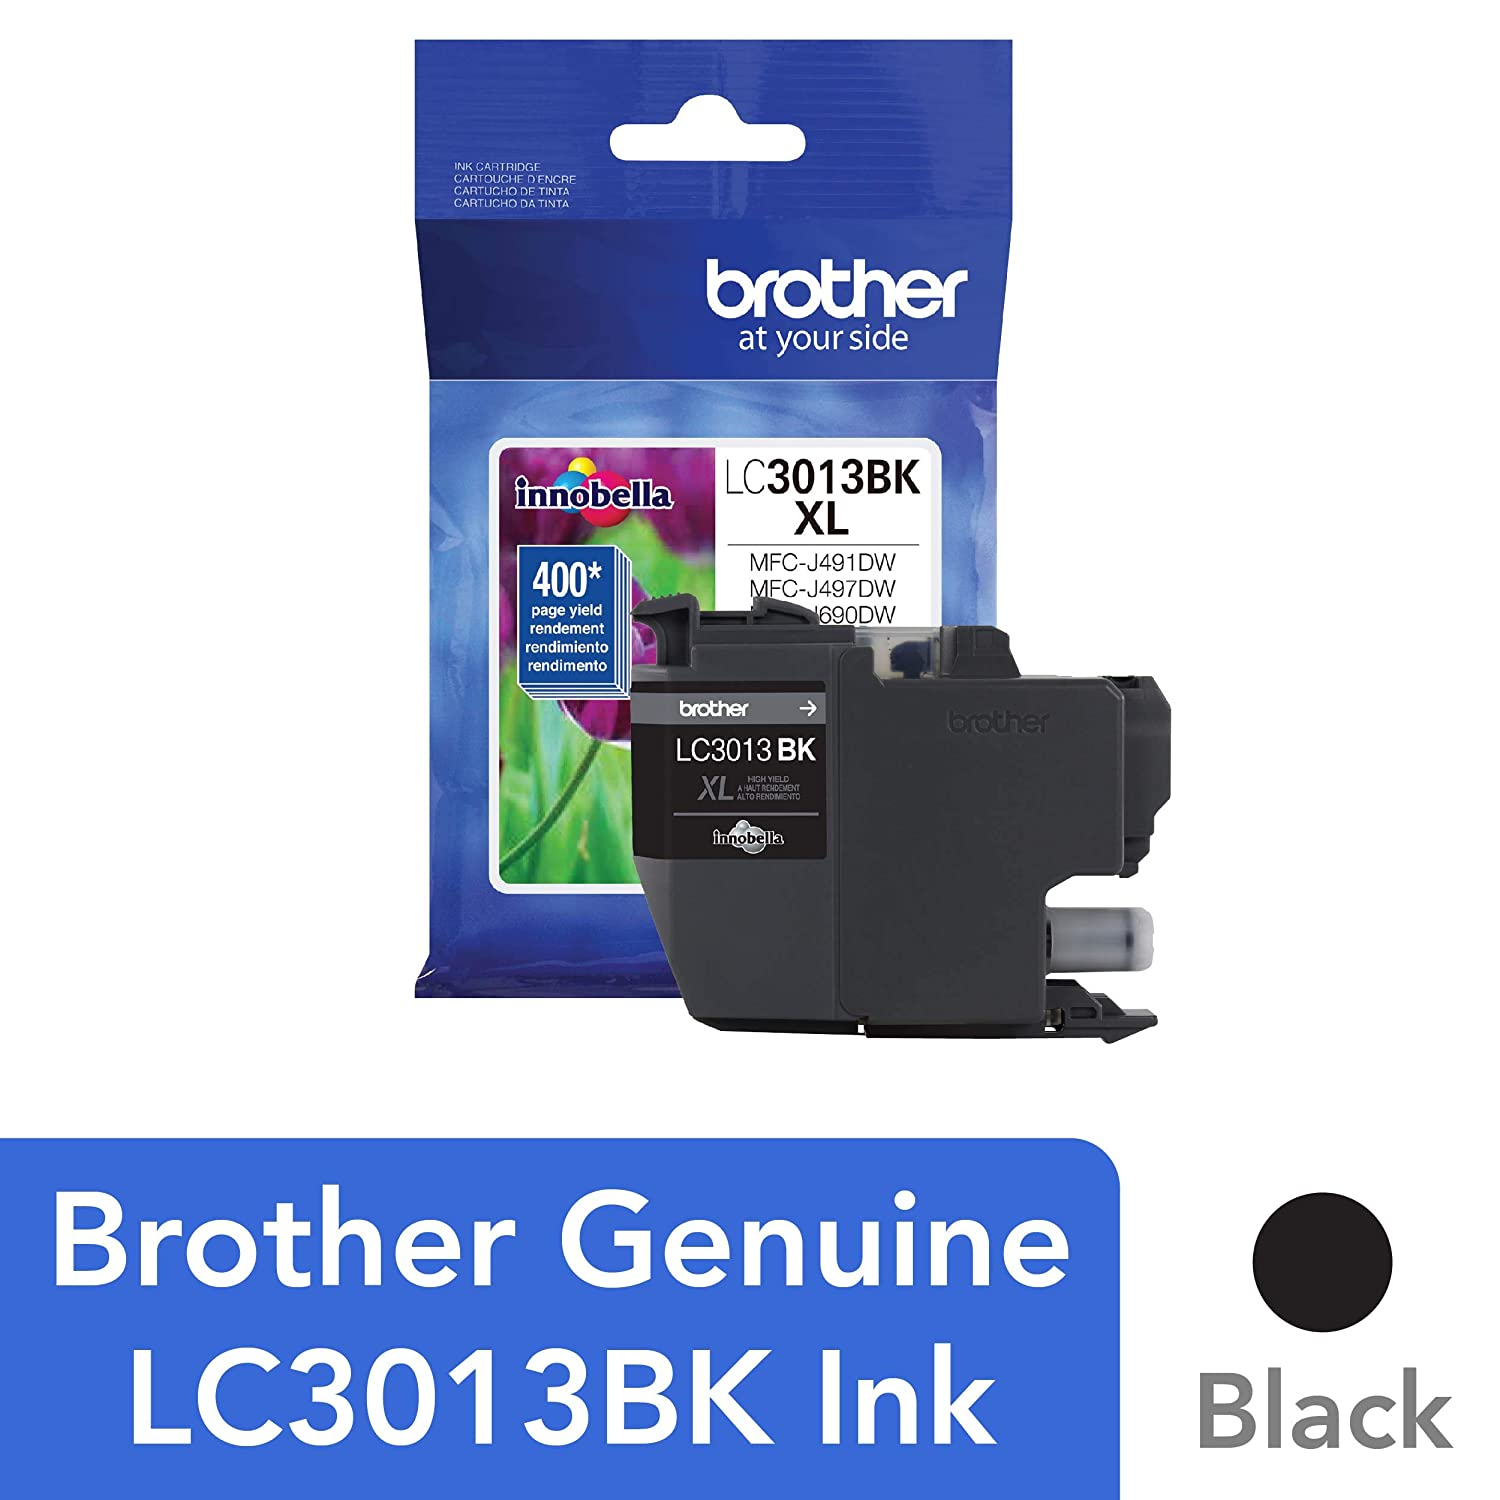 Brother Printer High Yield Ink Cartridge Page Up To 400 Pages Black (LC3013BK)